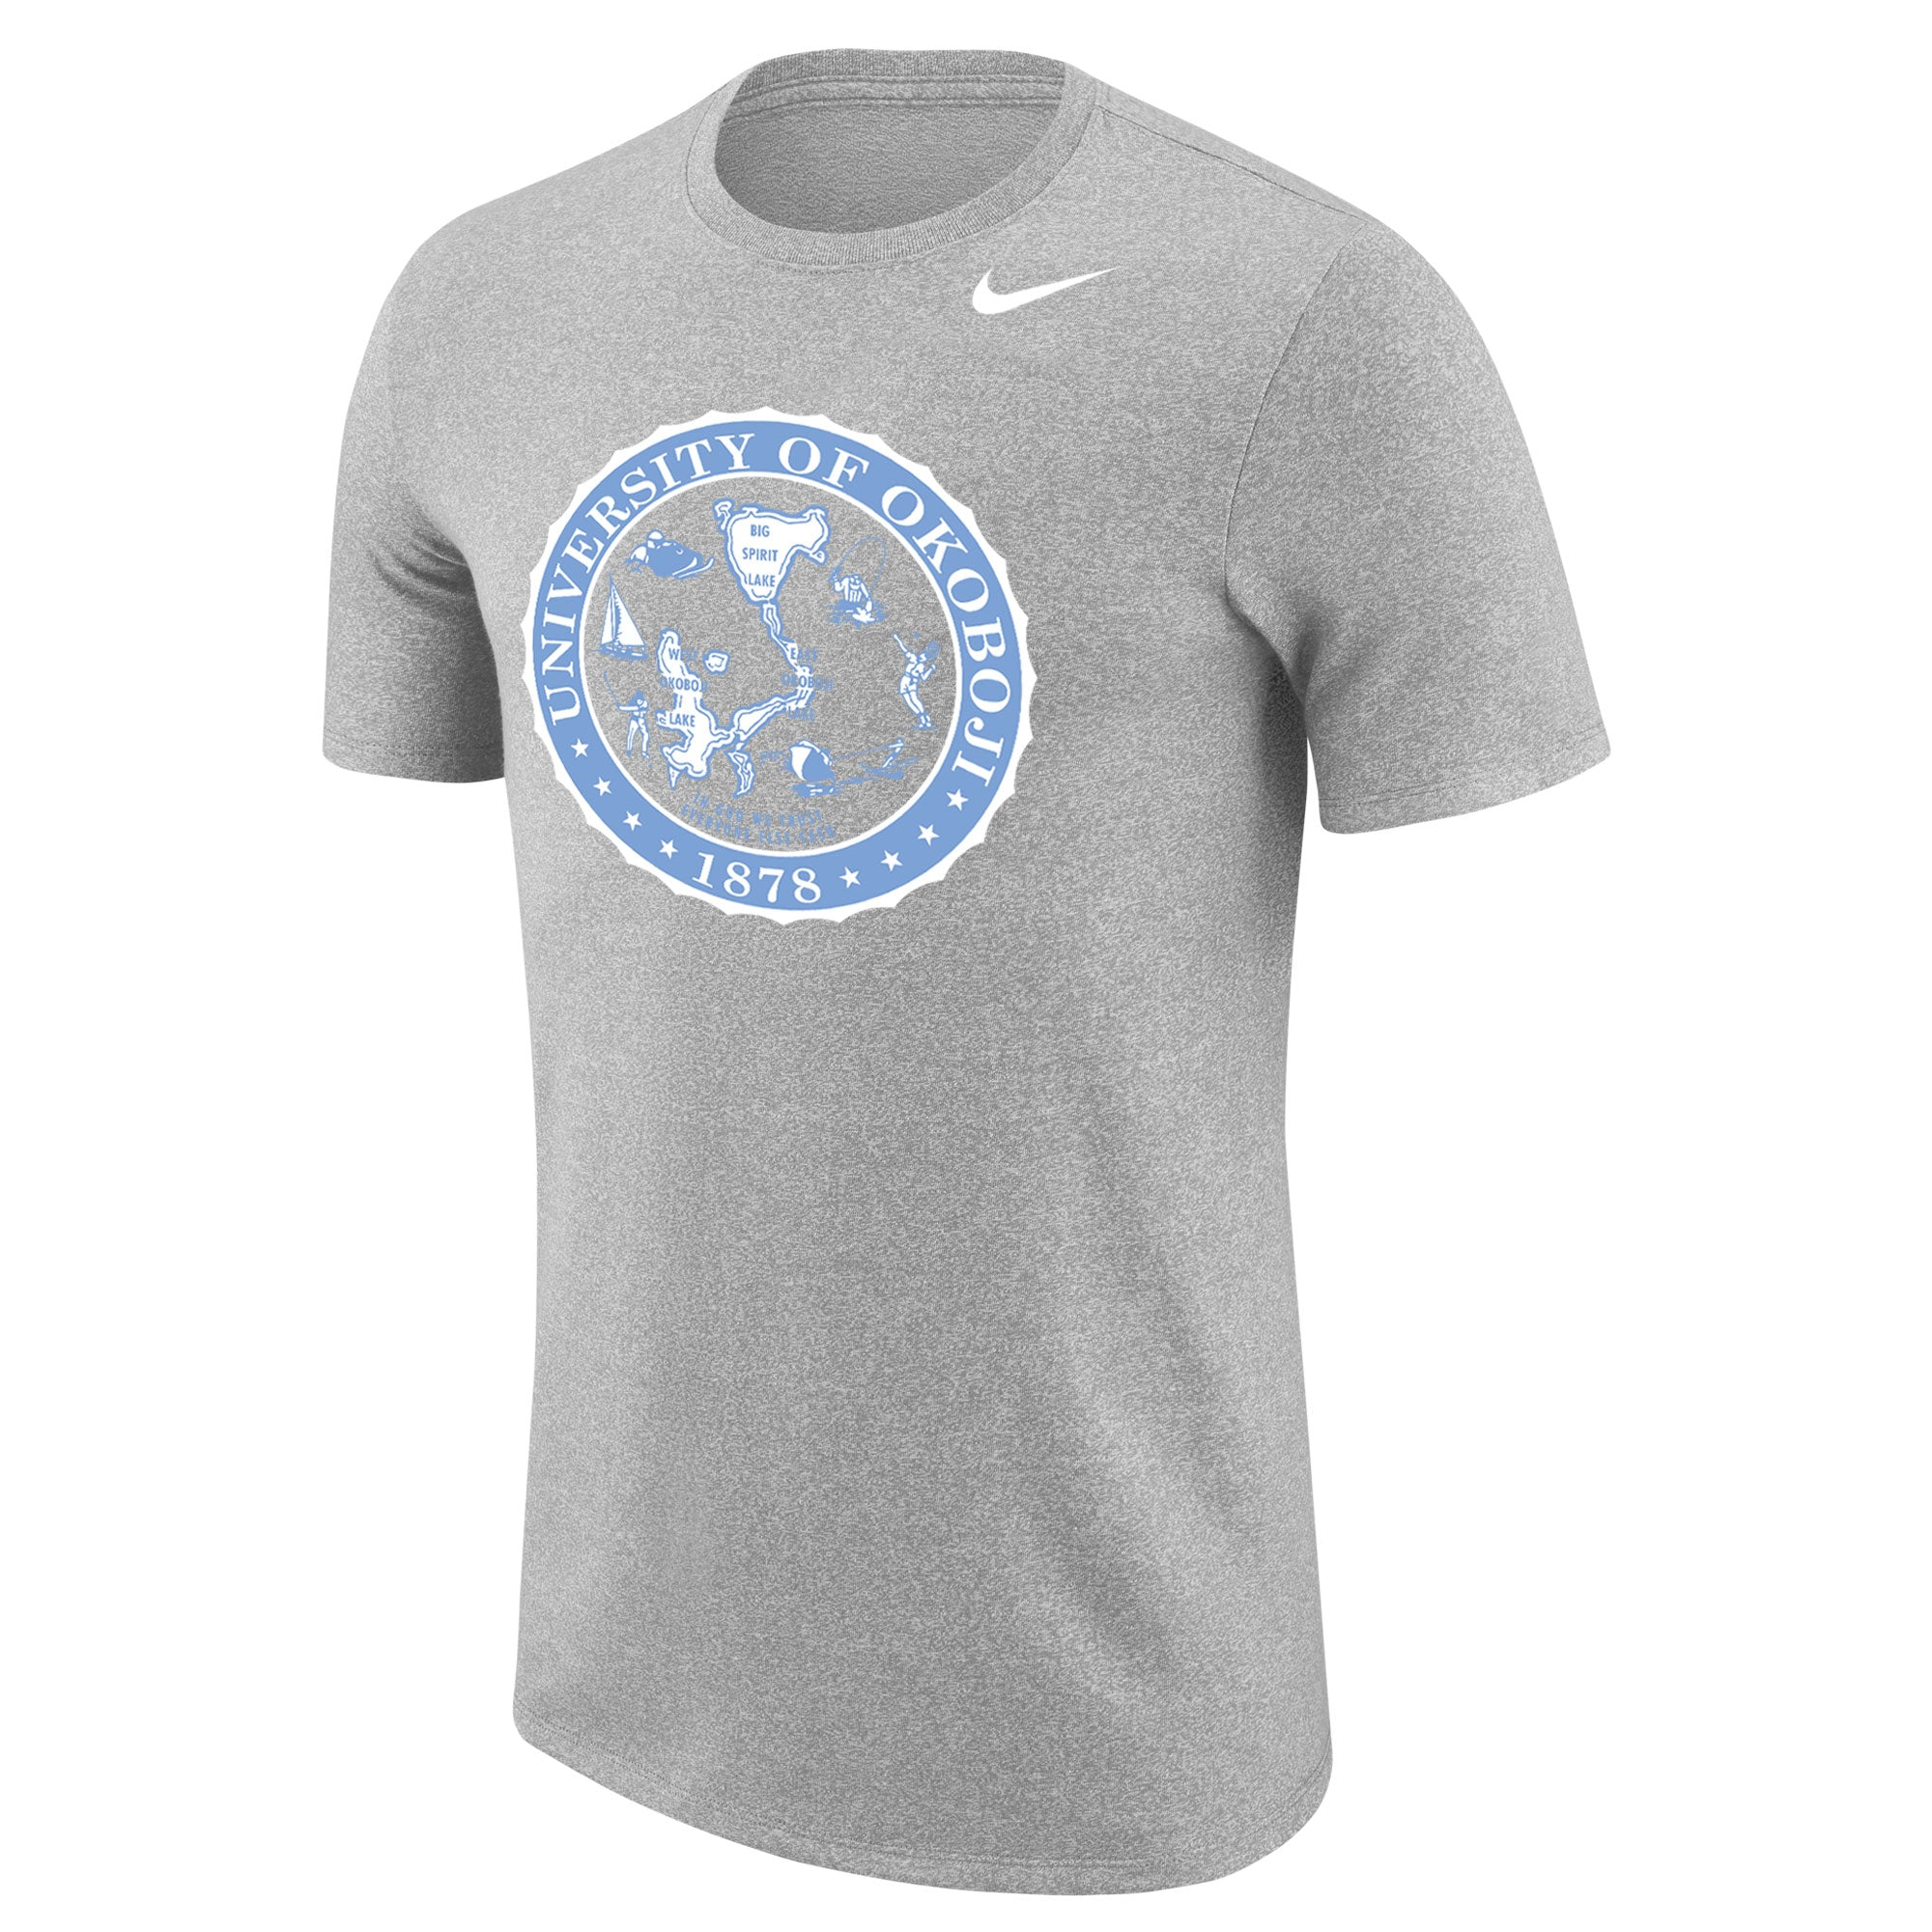 University of Okoboji - Marled Short Sleeve Tee